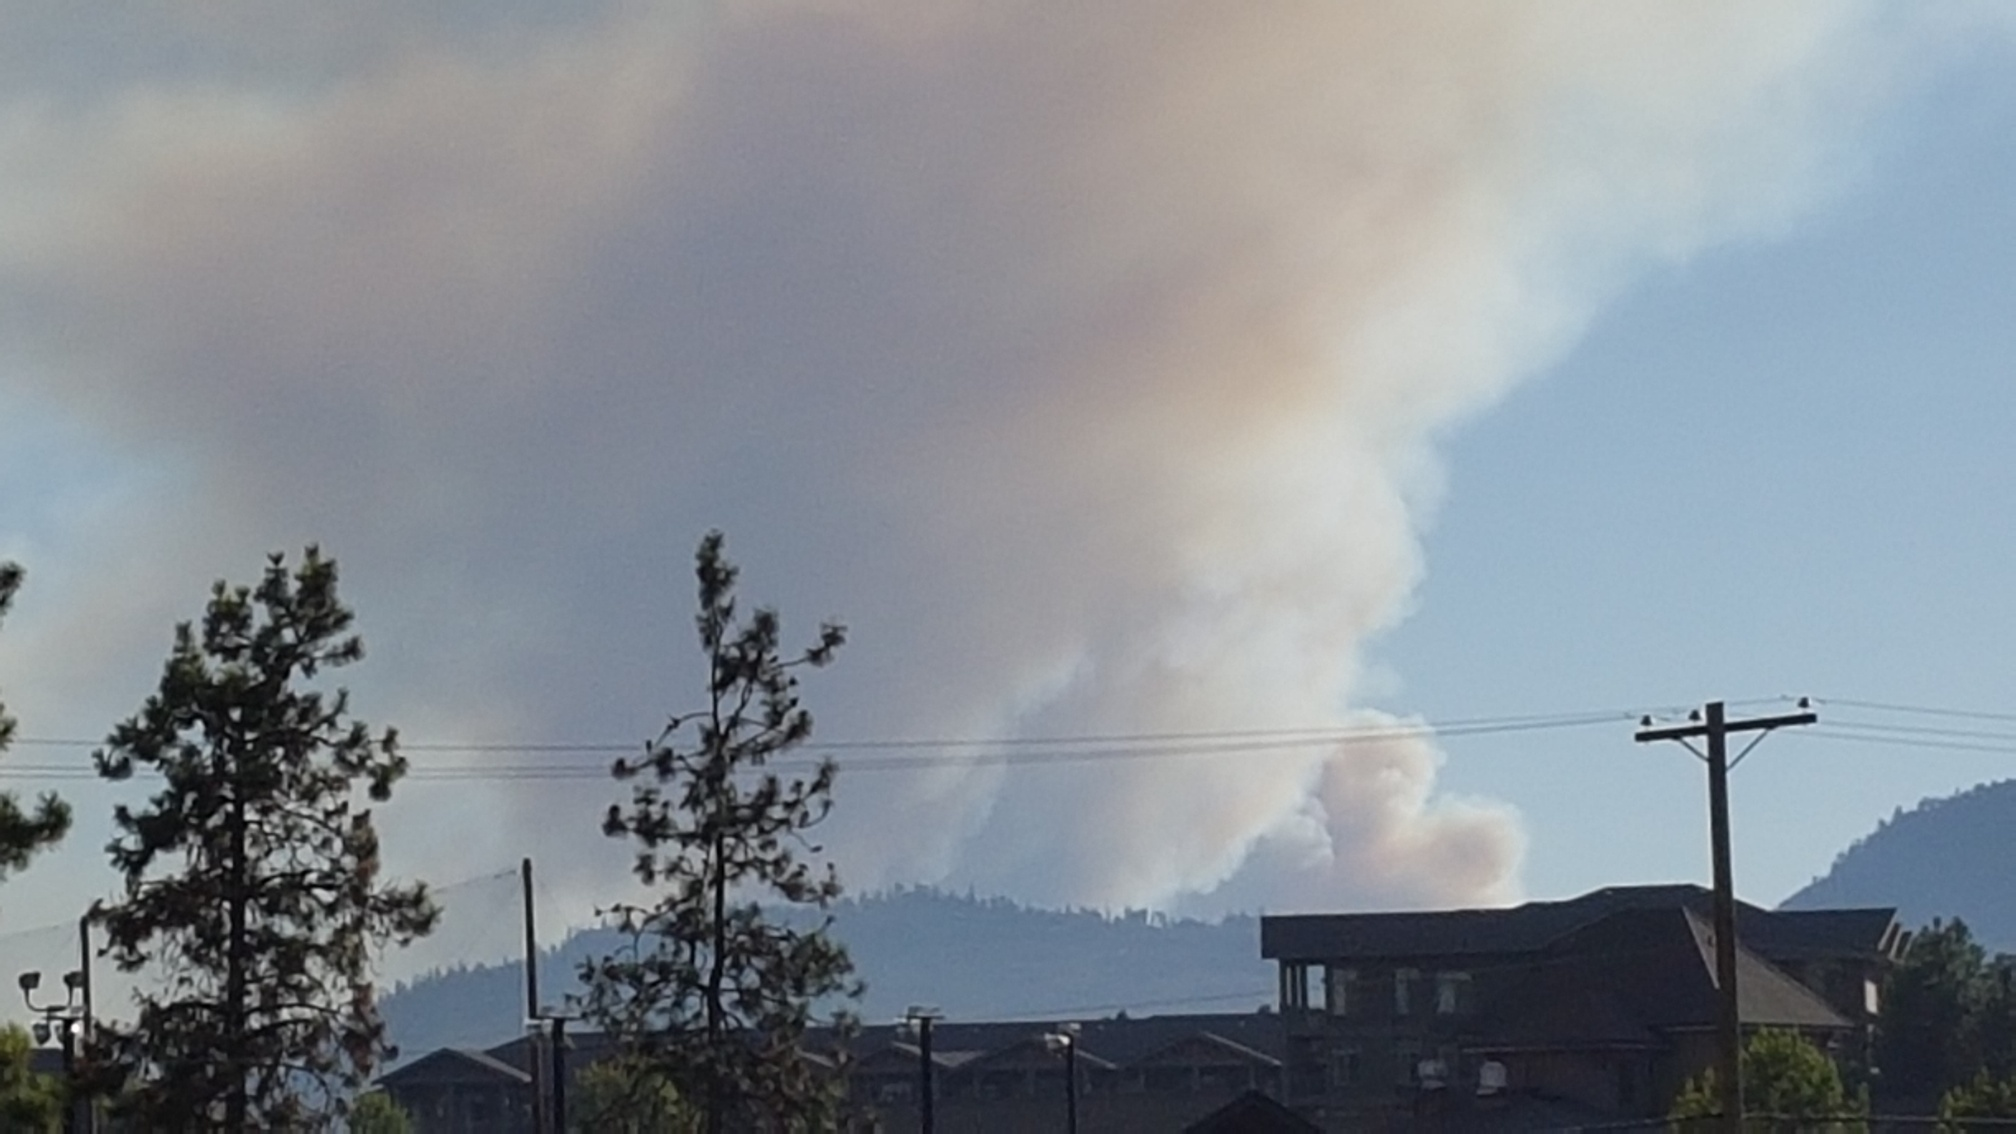 BC Wildfire Scaling Back Finlay Creek, Bears in Regional Parks and YLW Wants Local Artists